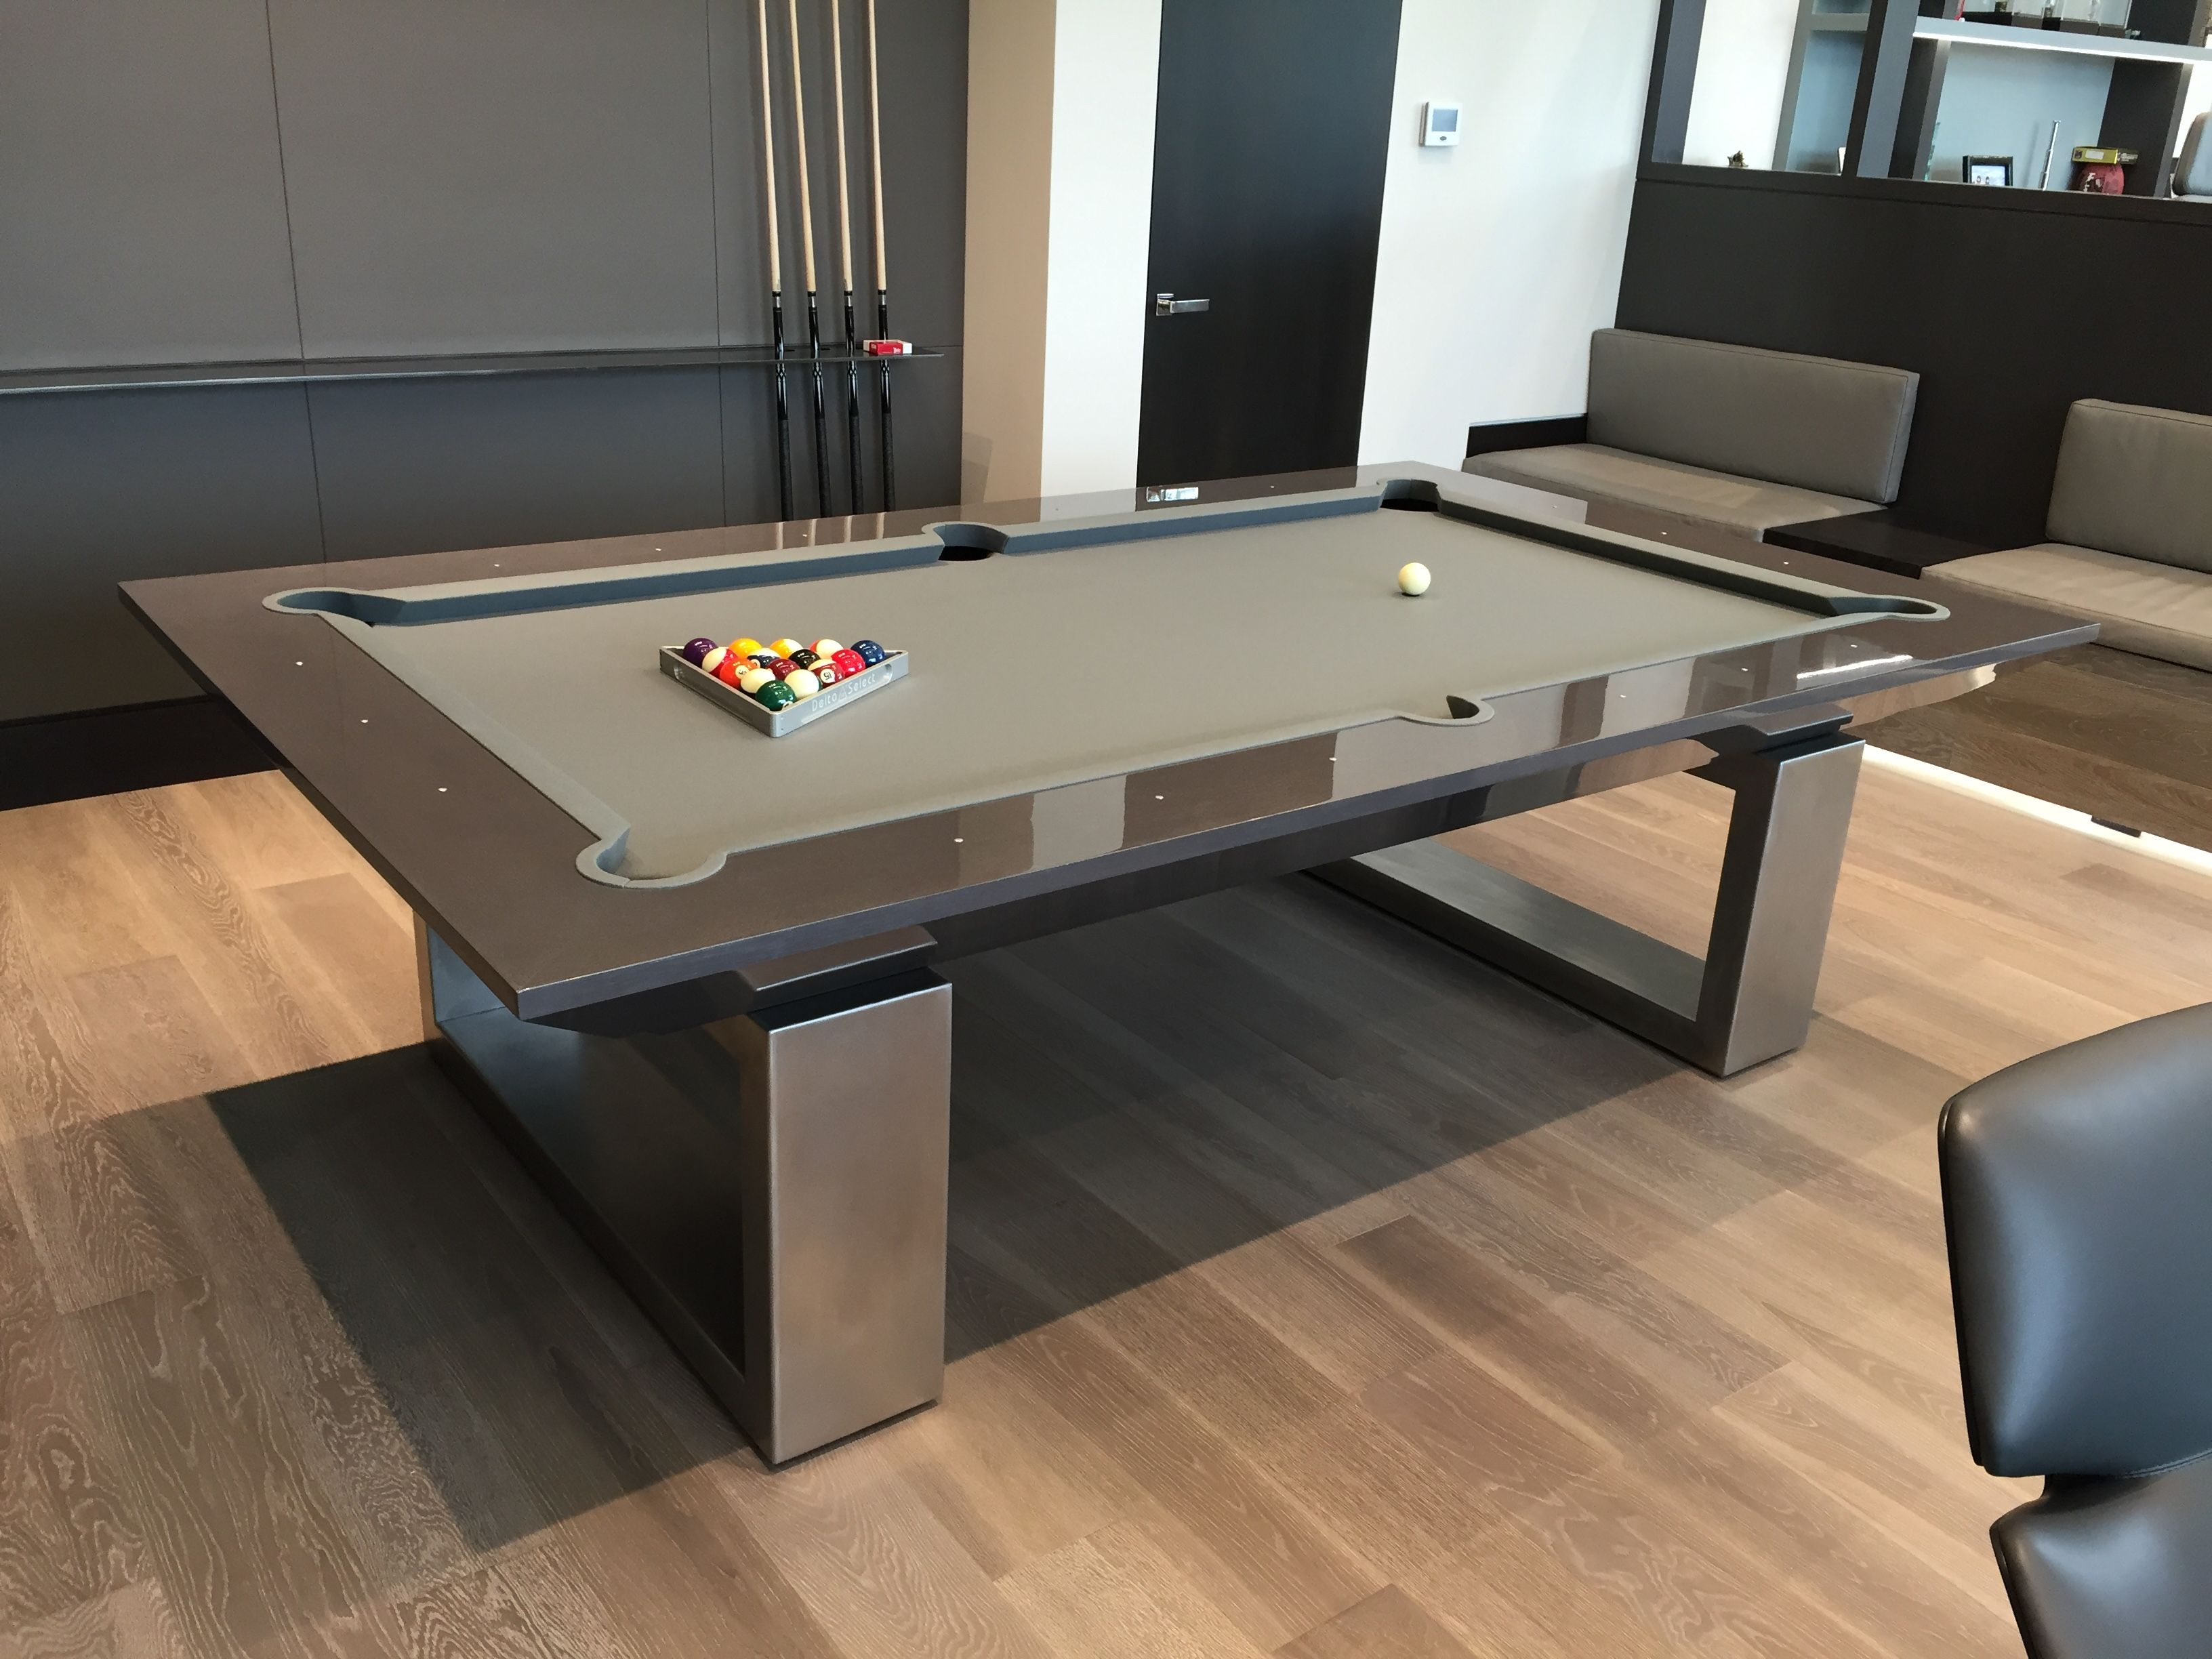 Contemporary Pool Table By MITCHELL Pool Tables Design By Bg - Chrome pool table